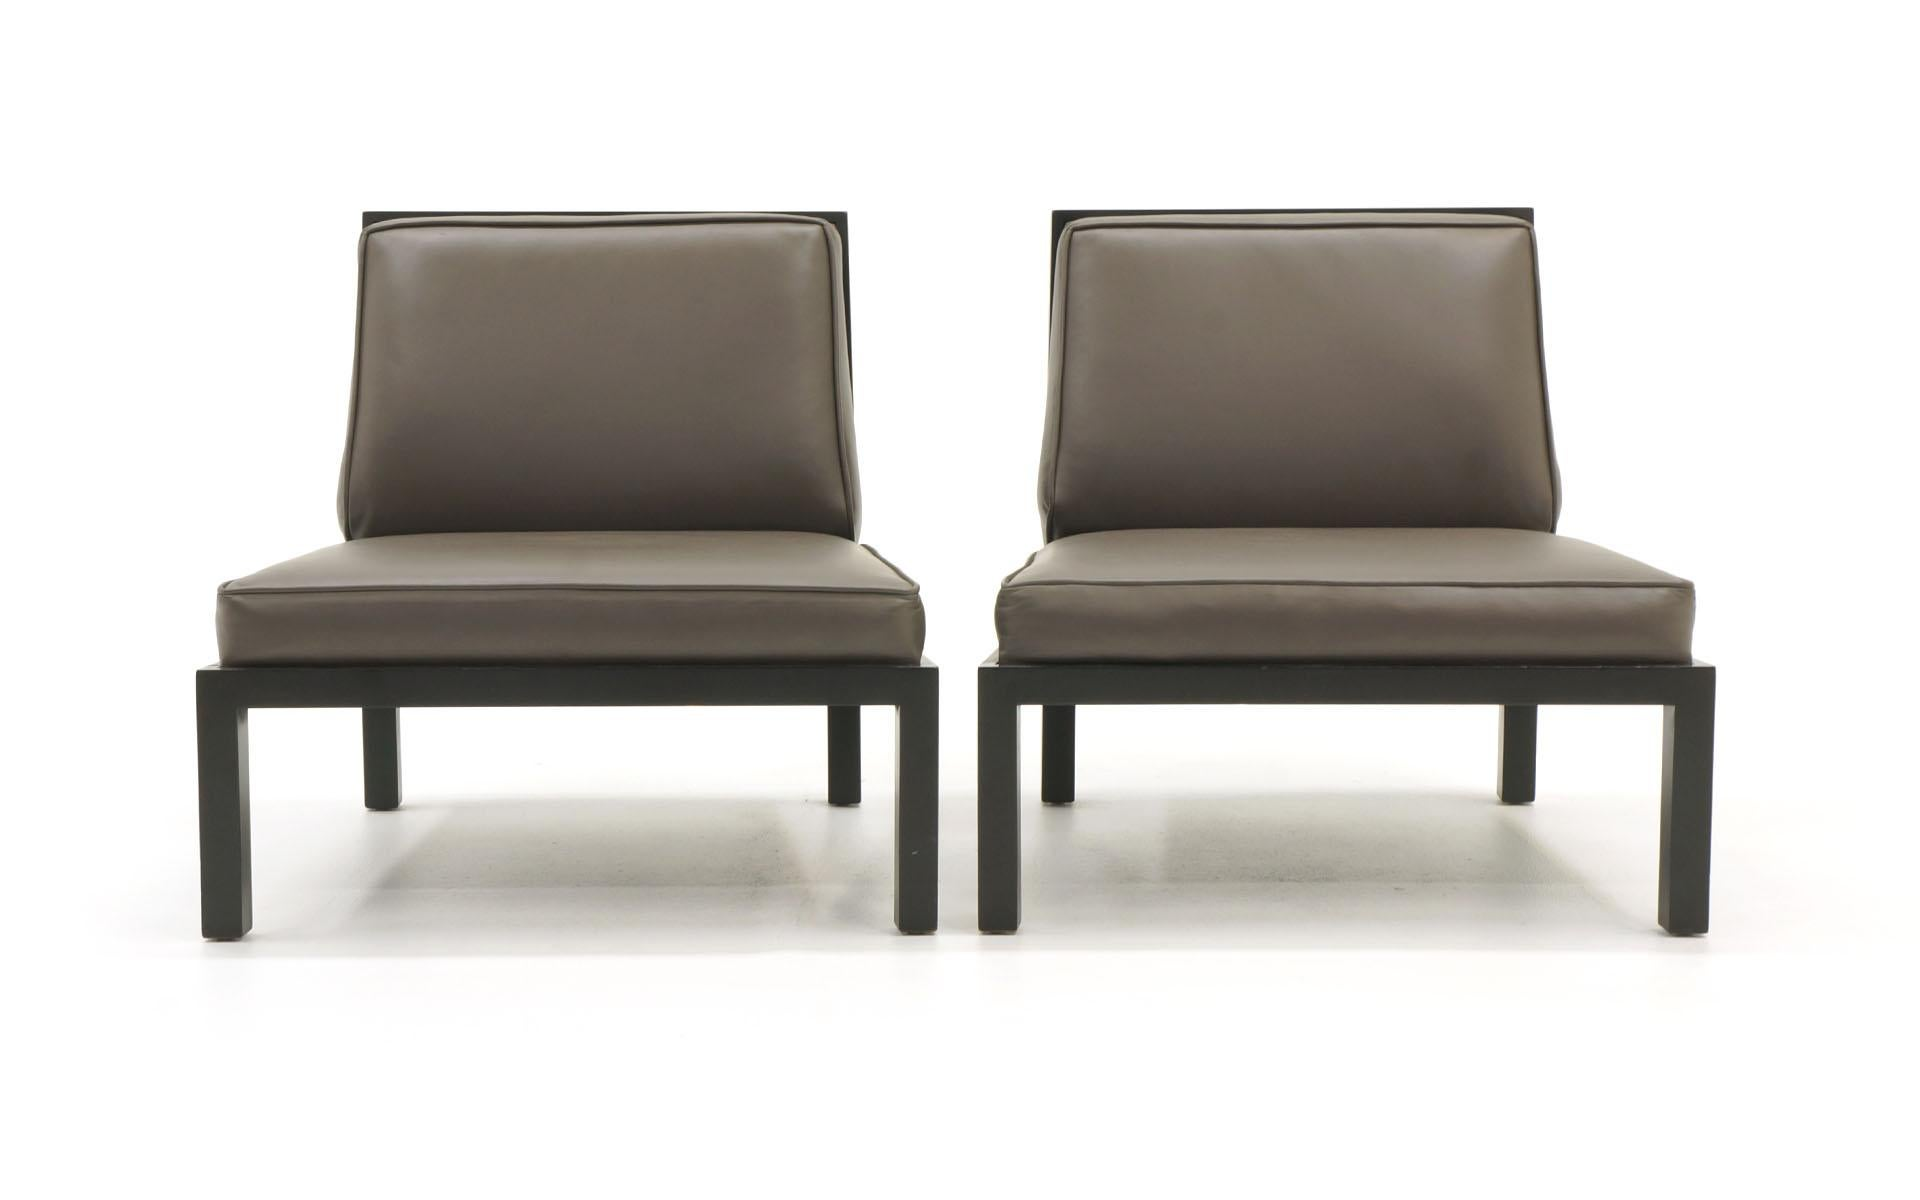 Mid Century Modern Pair Of Slipper Chairs By Baker, Original Leather With  Ebony Wood